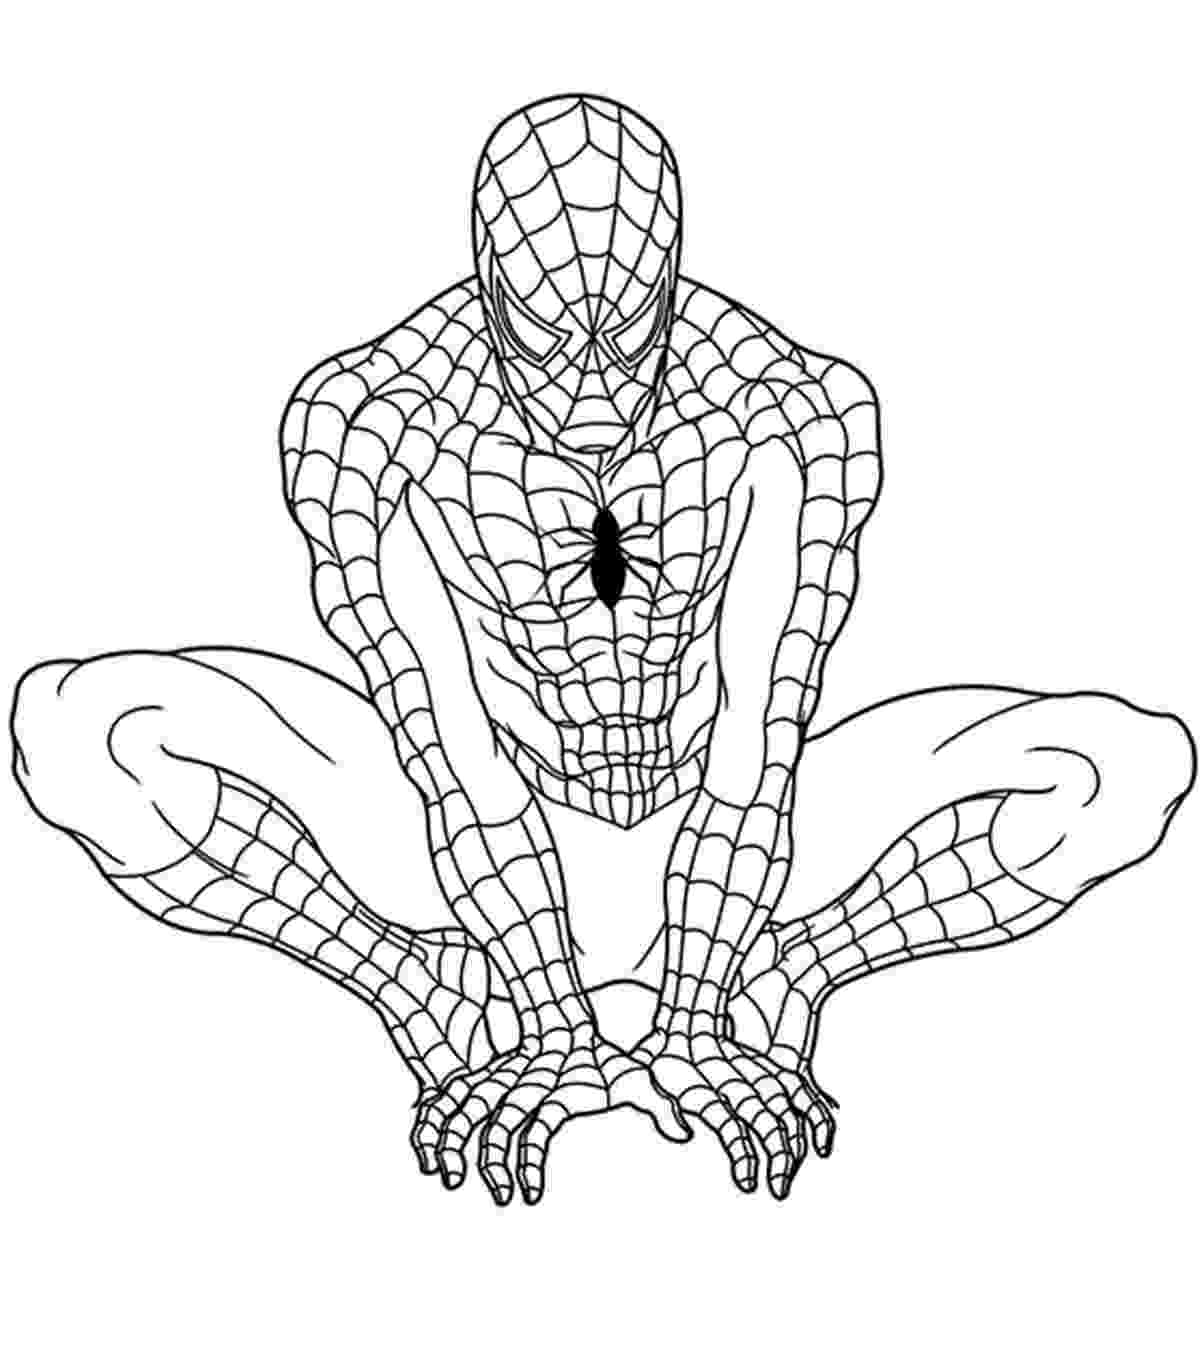 superhero coloring superhero coloring pages to download and print for free superhero coloring